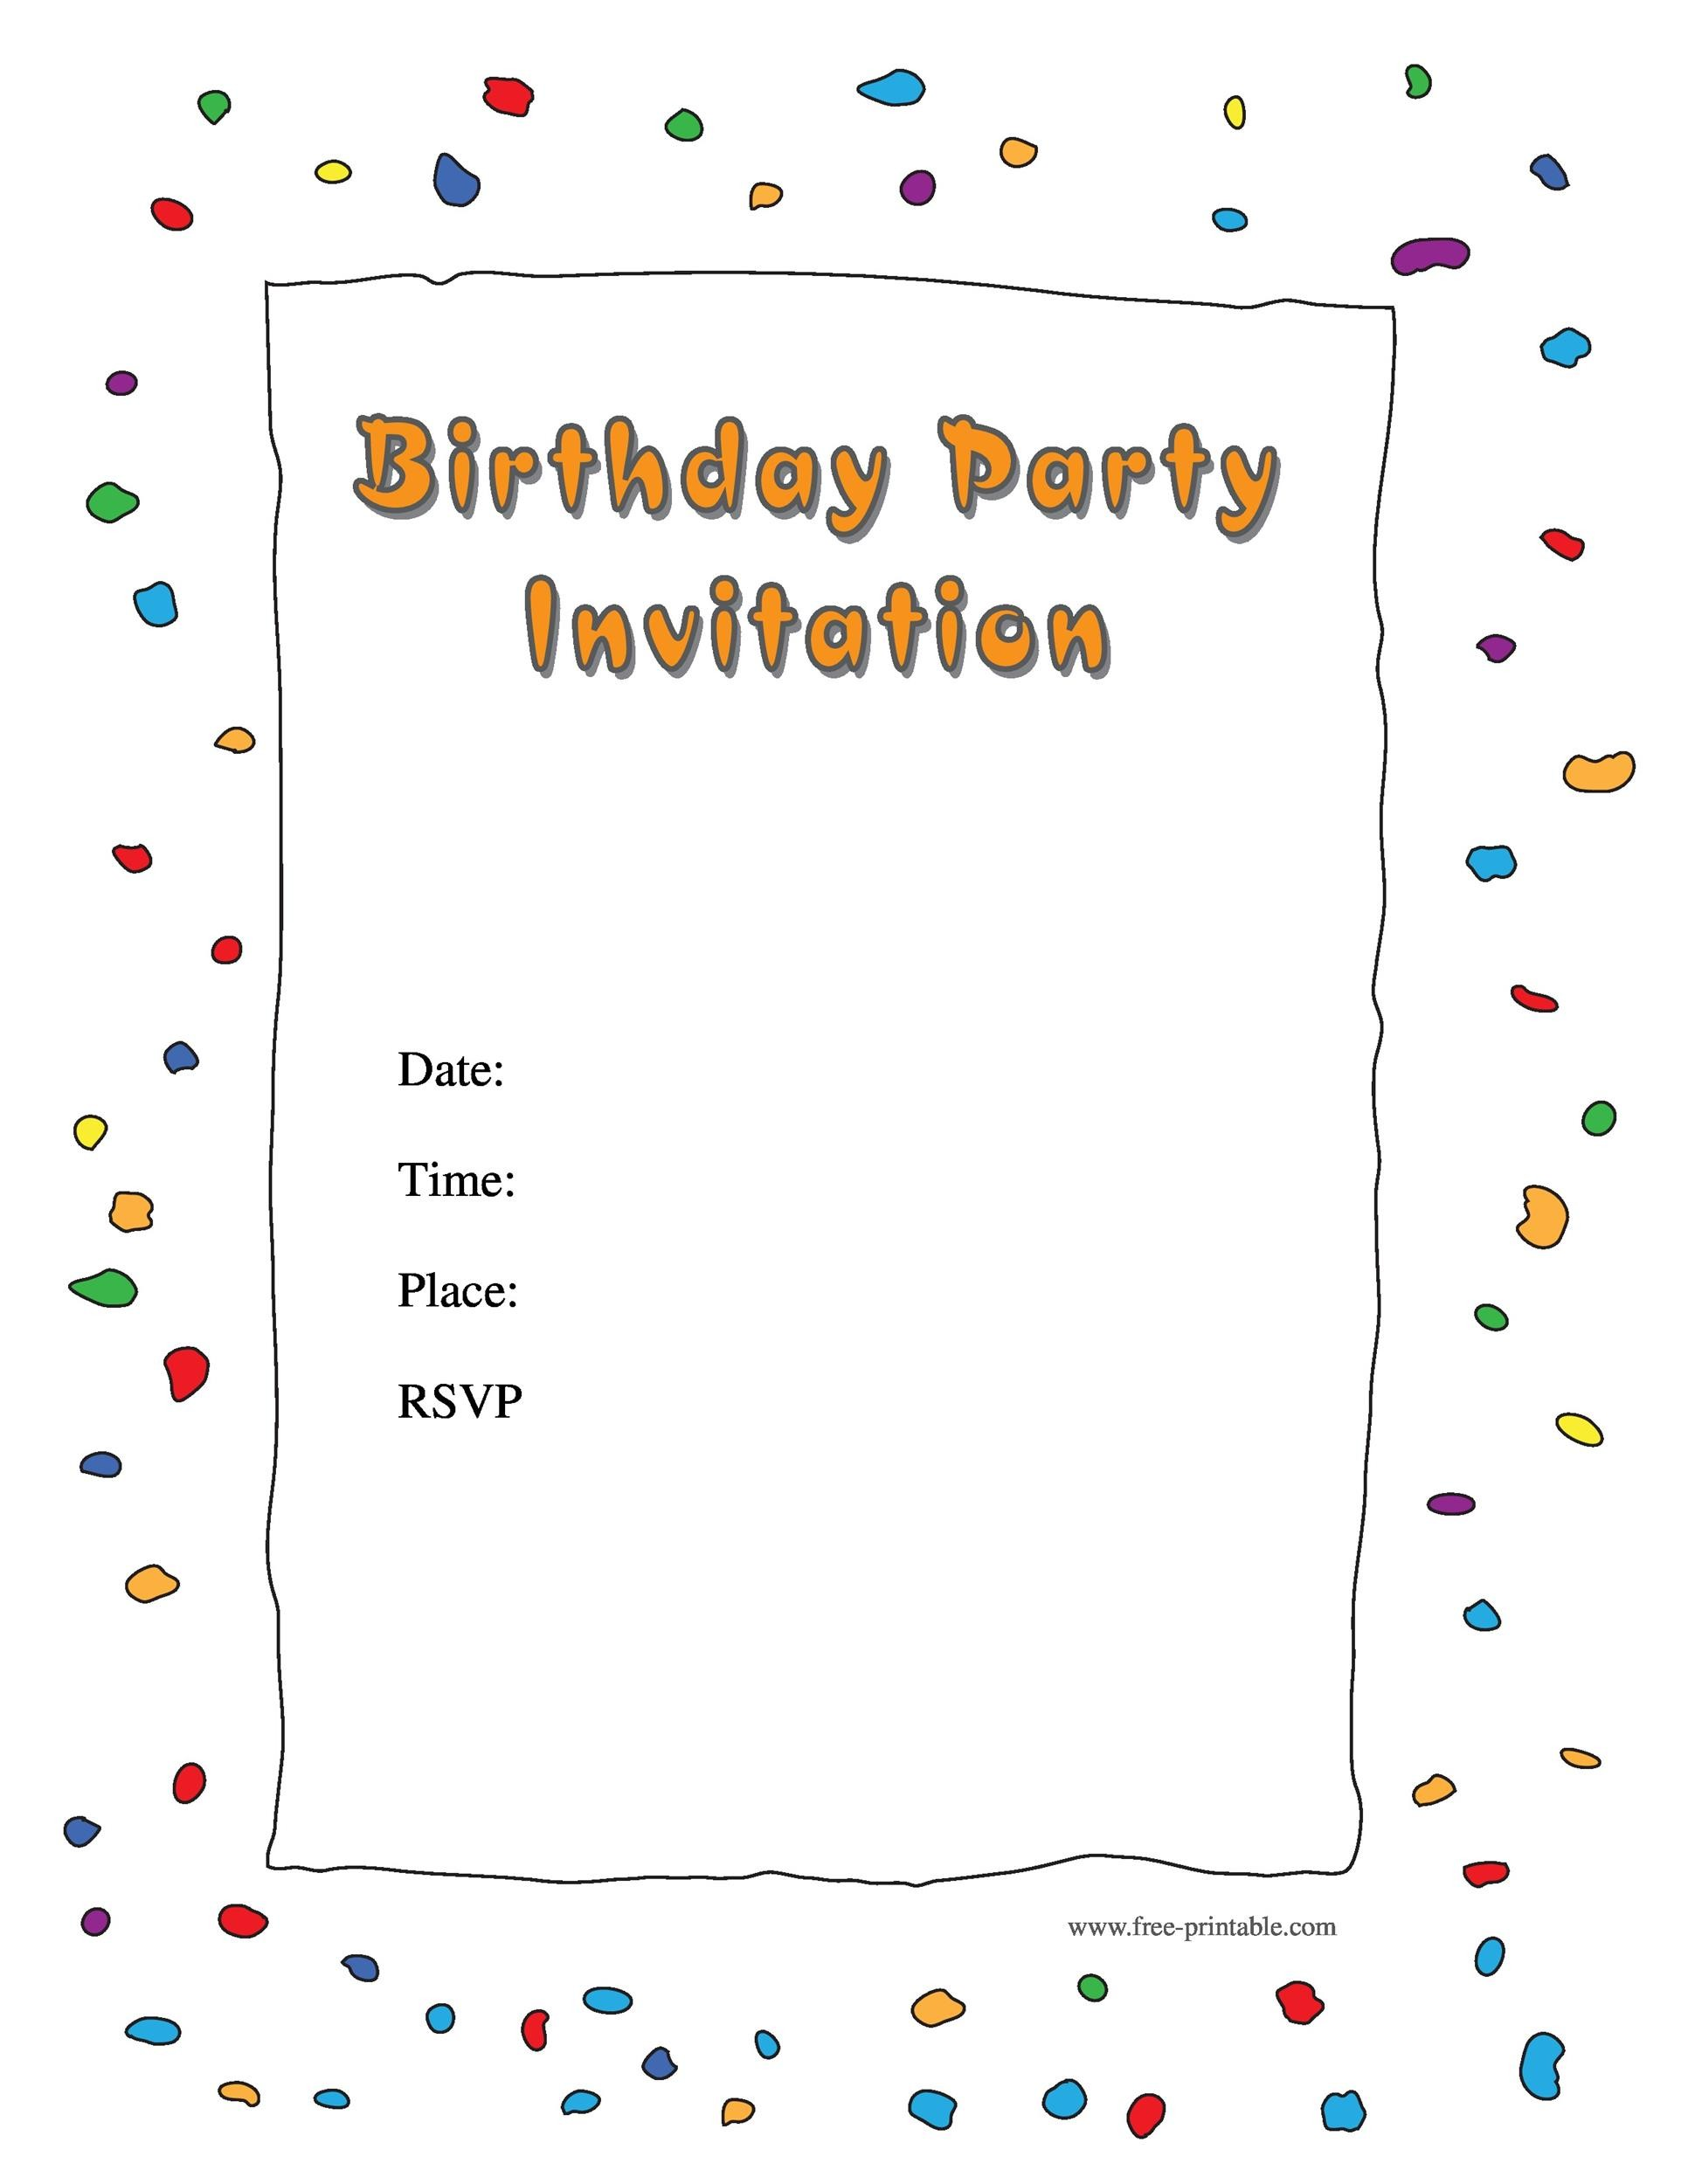 Free Birthday Party Invitation Templates Template Lab - Birthday party invitations for kids free templates